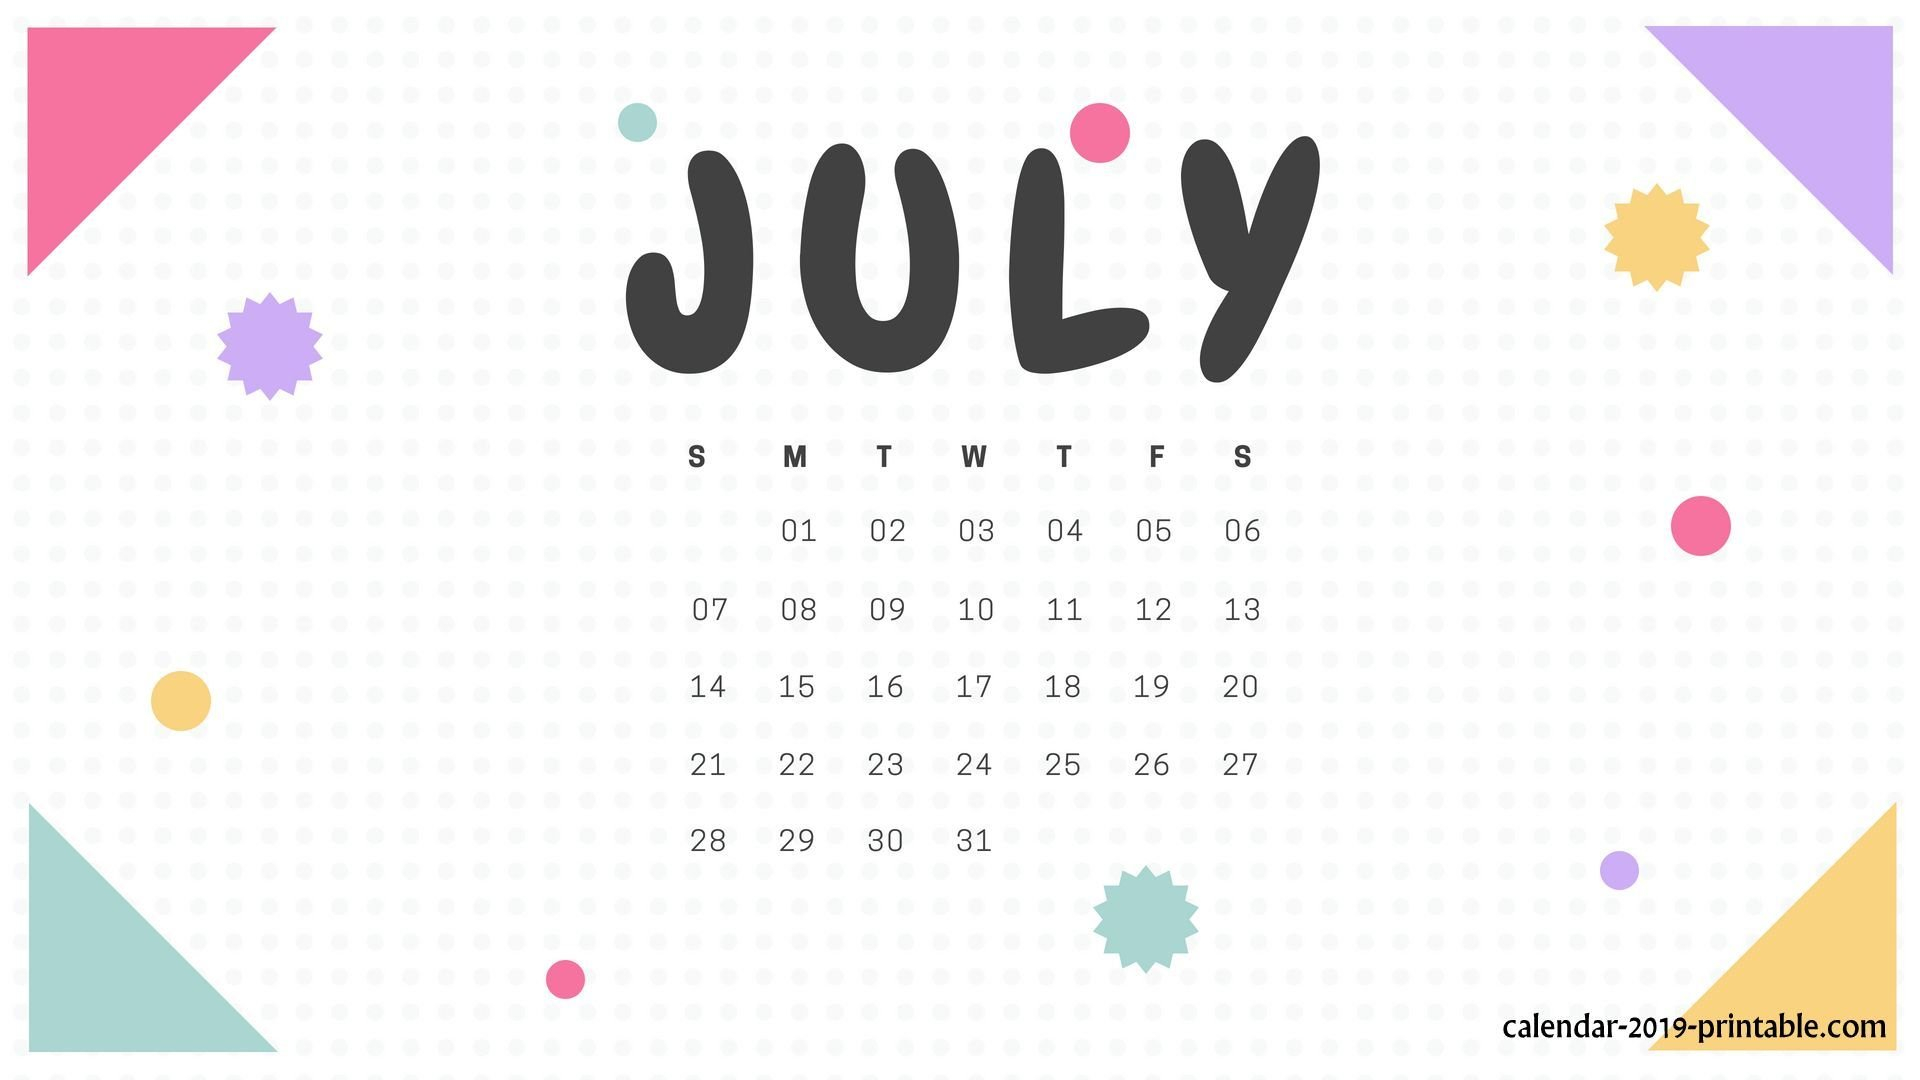 32+] July 2019 Calendar Wallpapers On Wallpapersafari Calendar 2019 Wallpaper